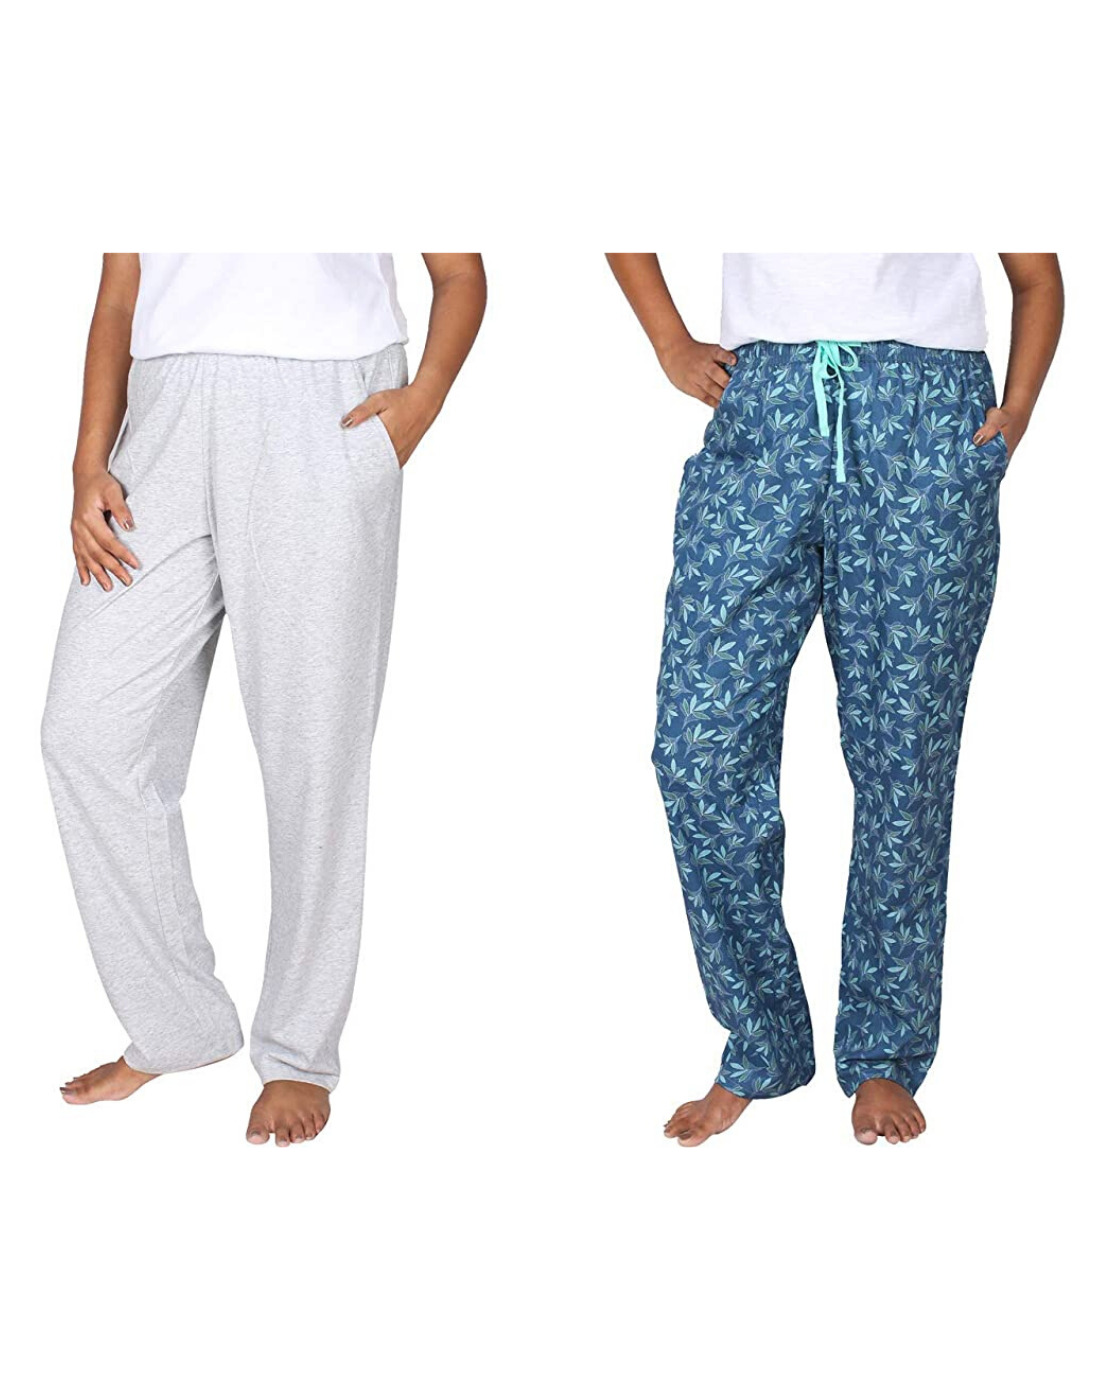 Leaf & Solid Pants Pack of 2